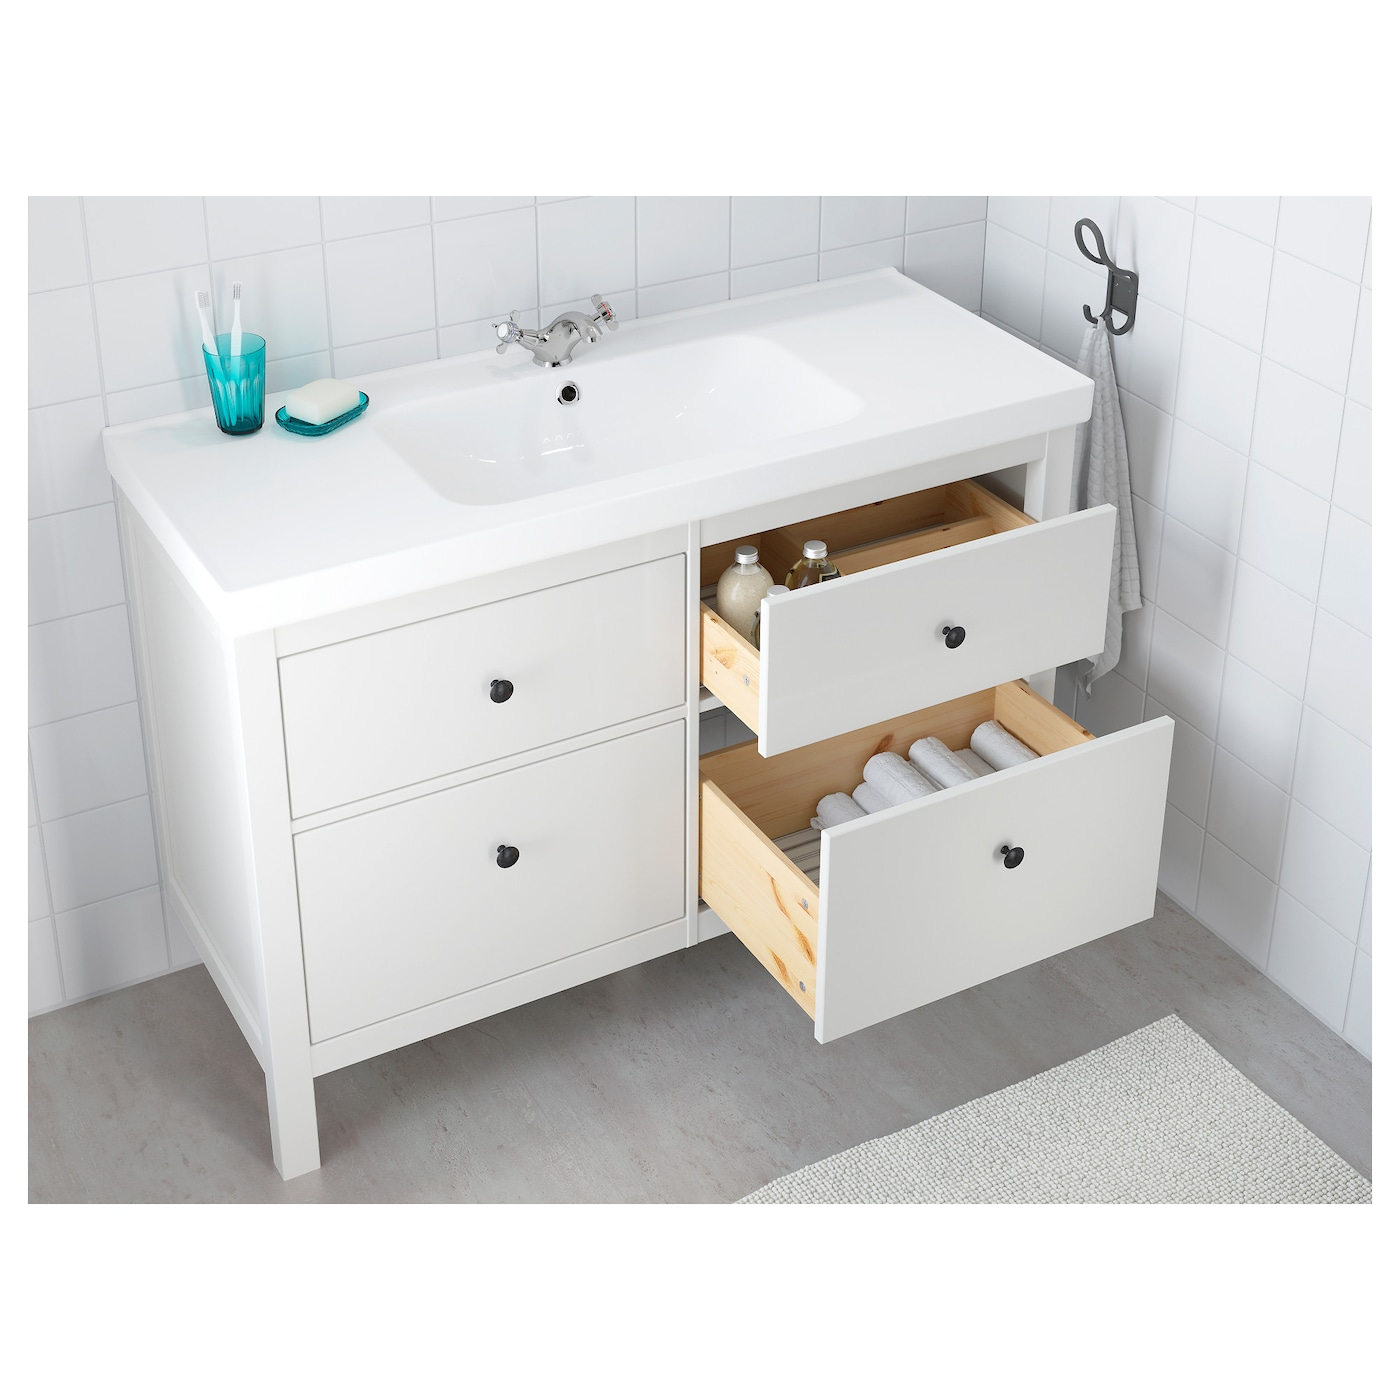 odensvik hemnes meuble lavabo 4tir blanc 123 x 49 x 89 cm ikea. Black Bedroom Furniture Sets. Home Design Ideas